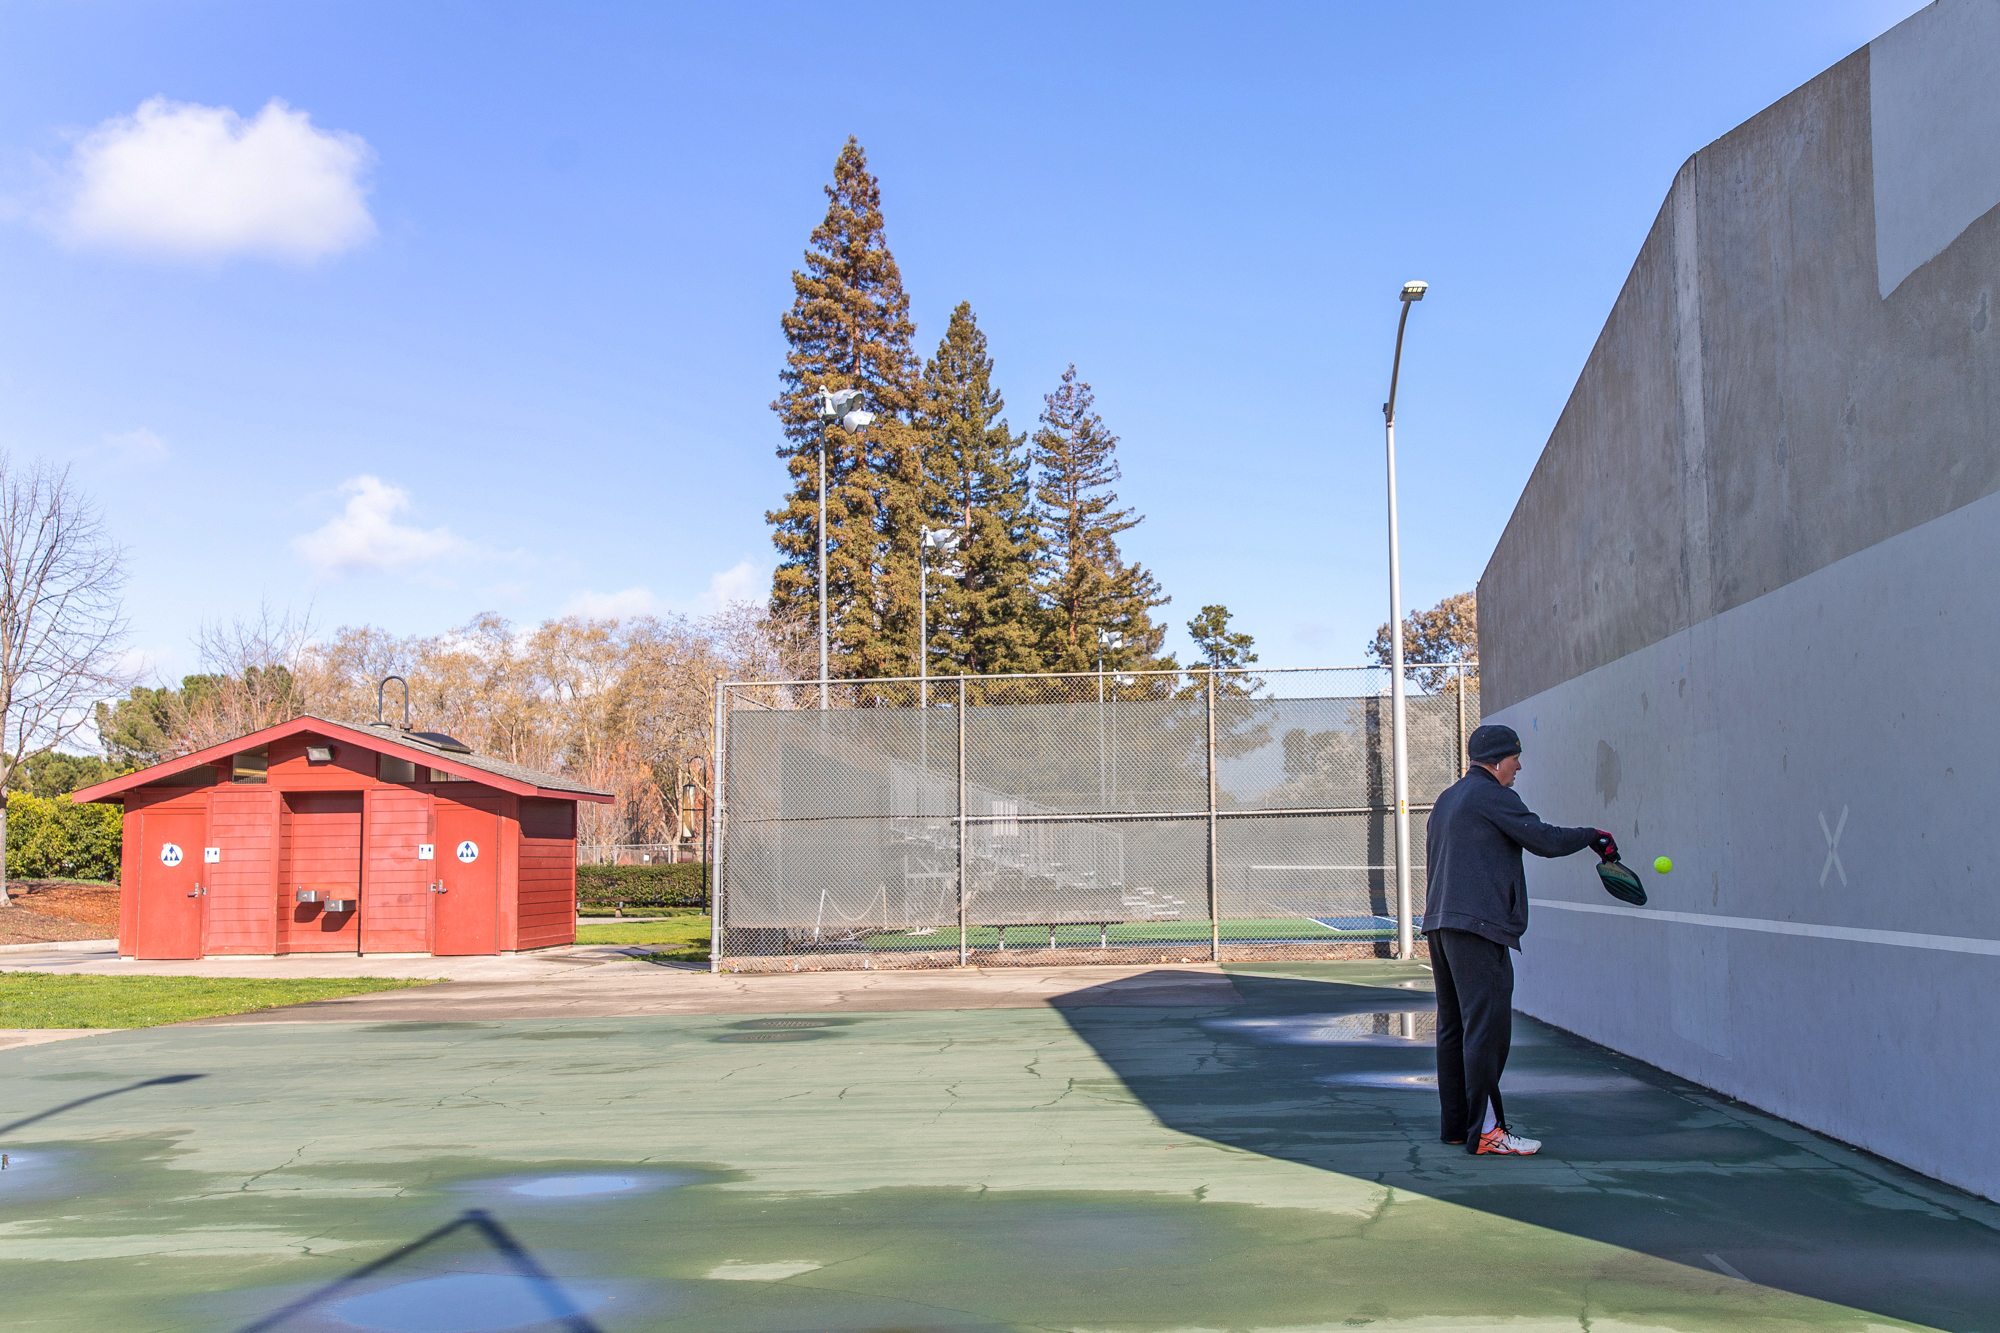 Kenneth Looney plays pickleball by himself at the Mitchell Park outdoor squash courts in Palo Alto on March 19. Photo by Magali Gauthier.